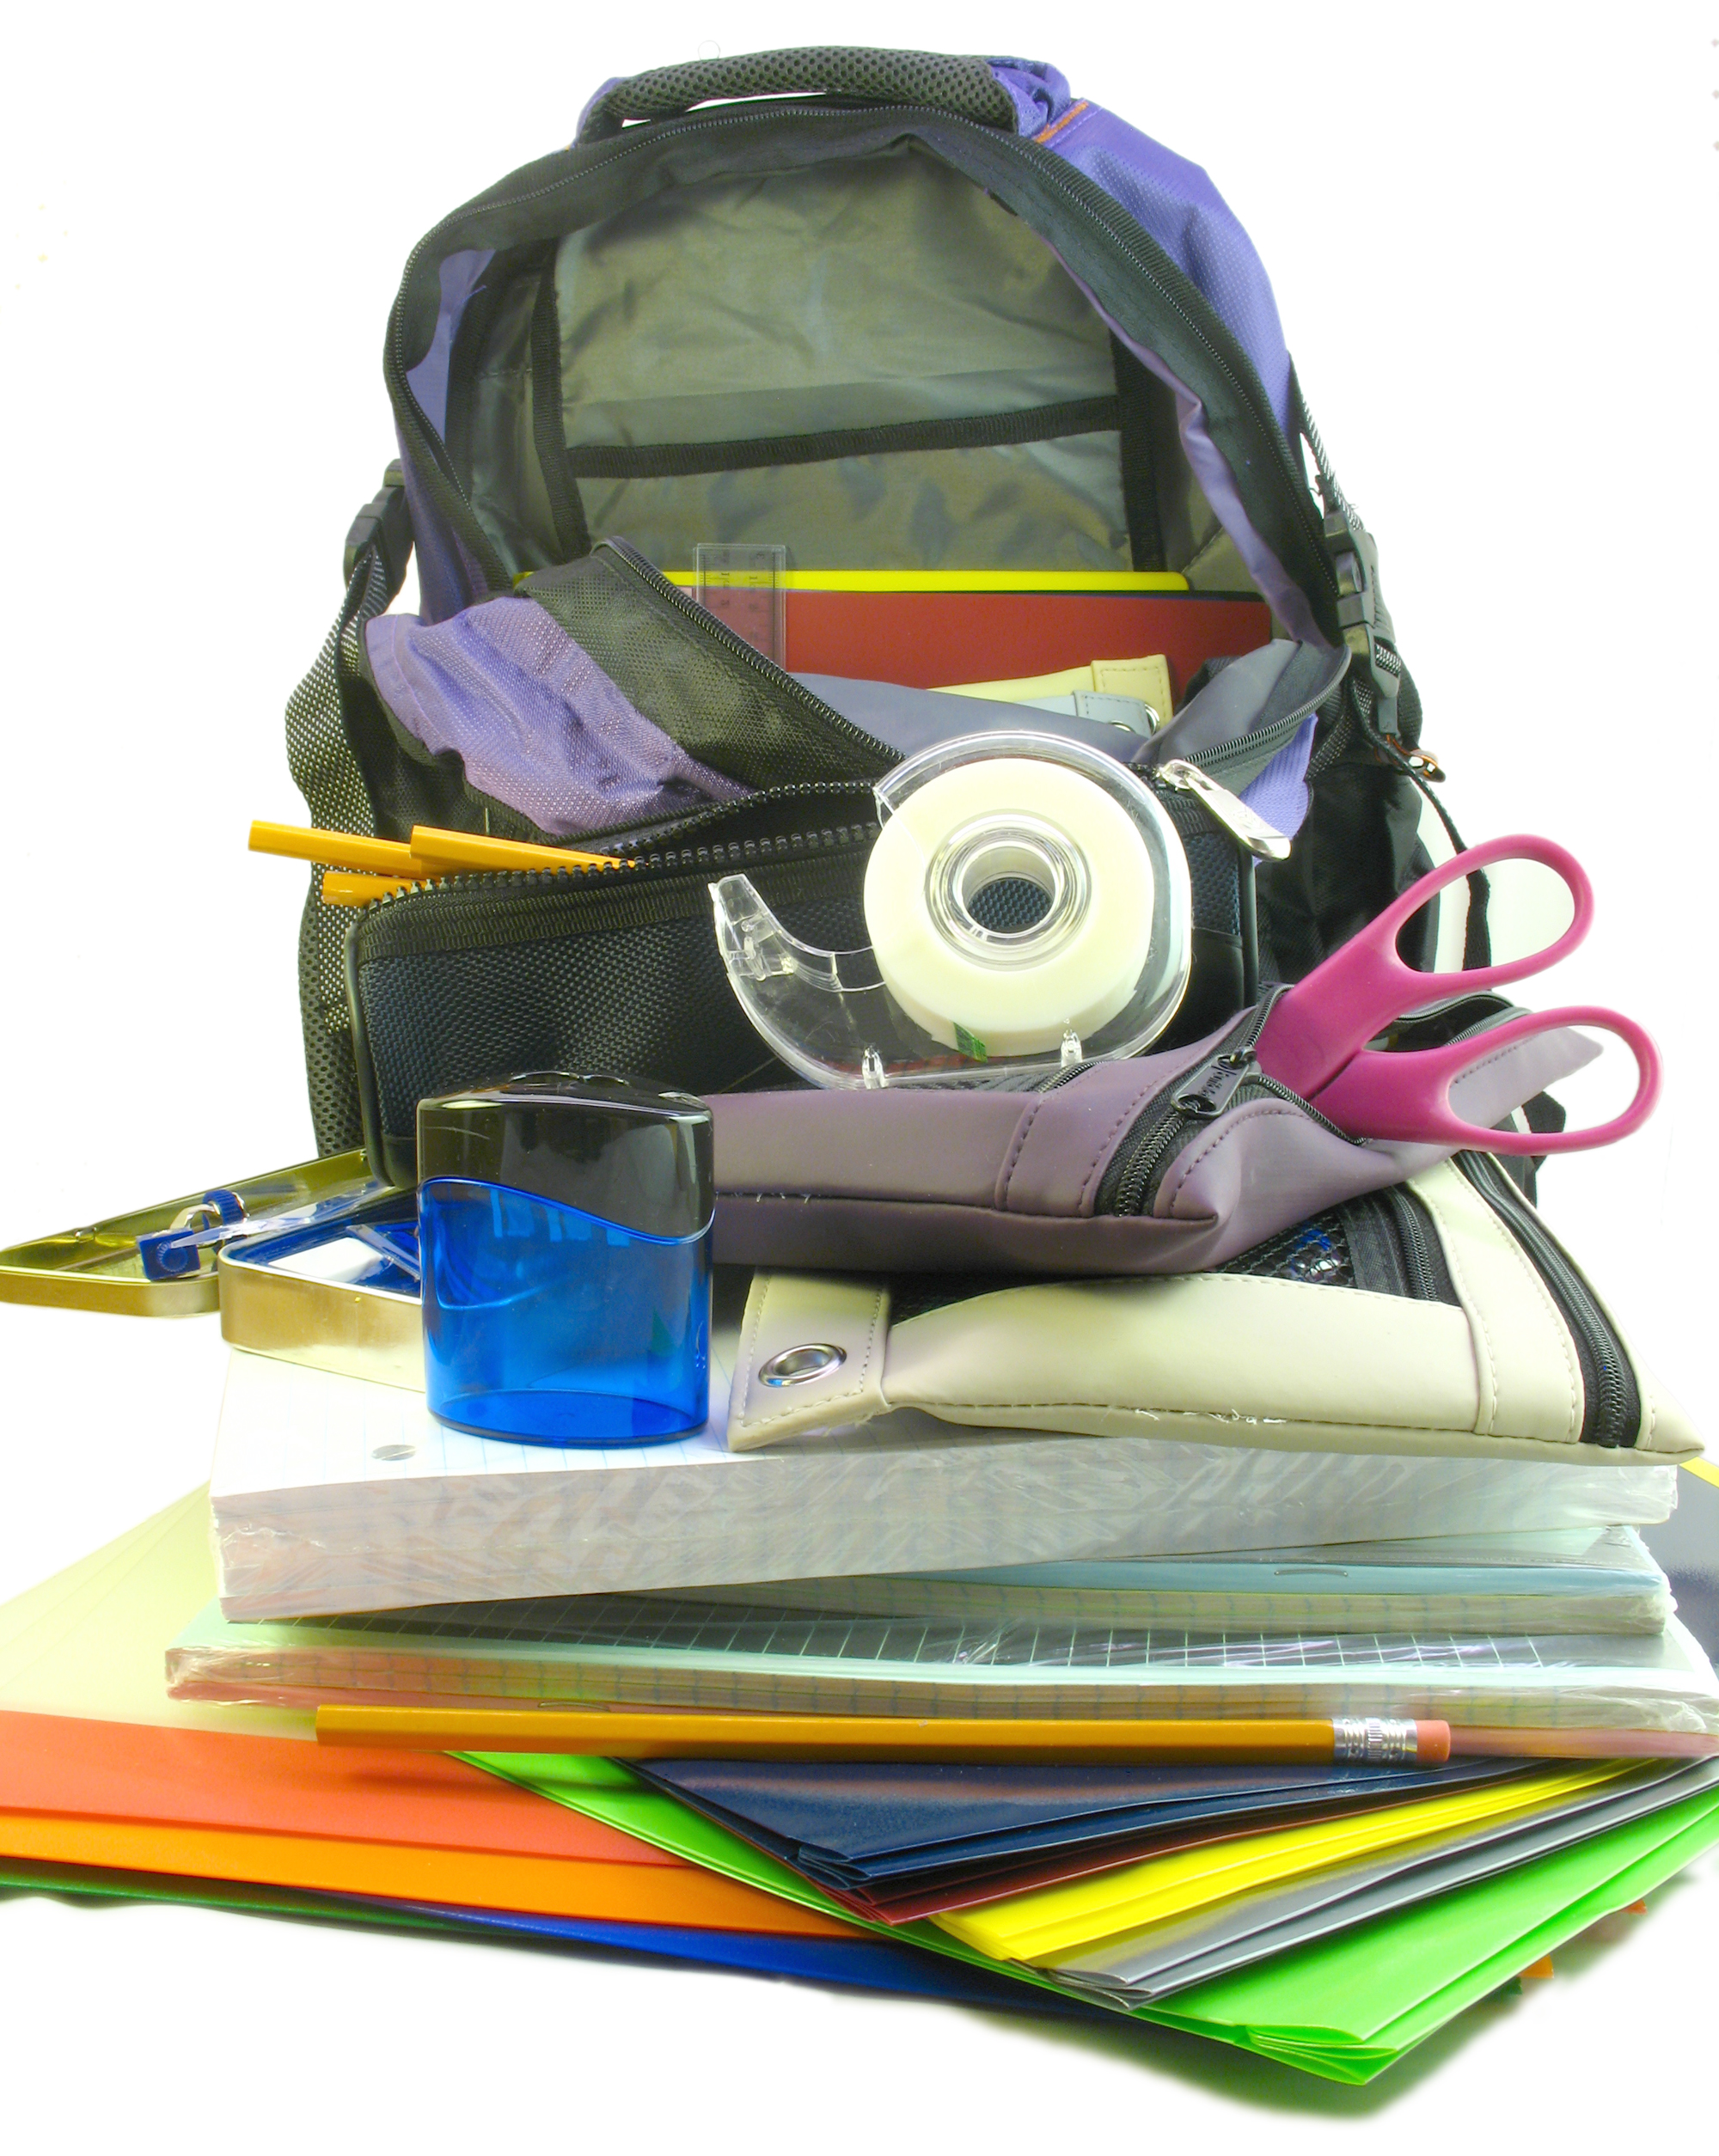 Beech Acres Parenting Center collecting backpacks for Cincinnati area kids